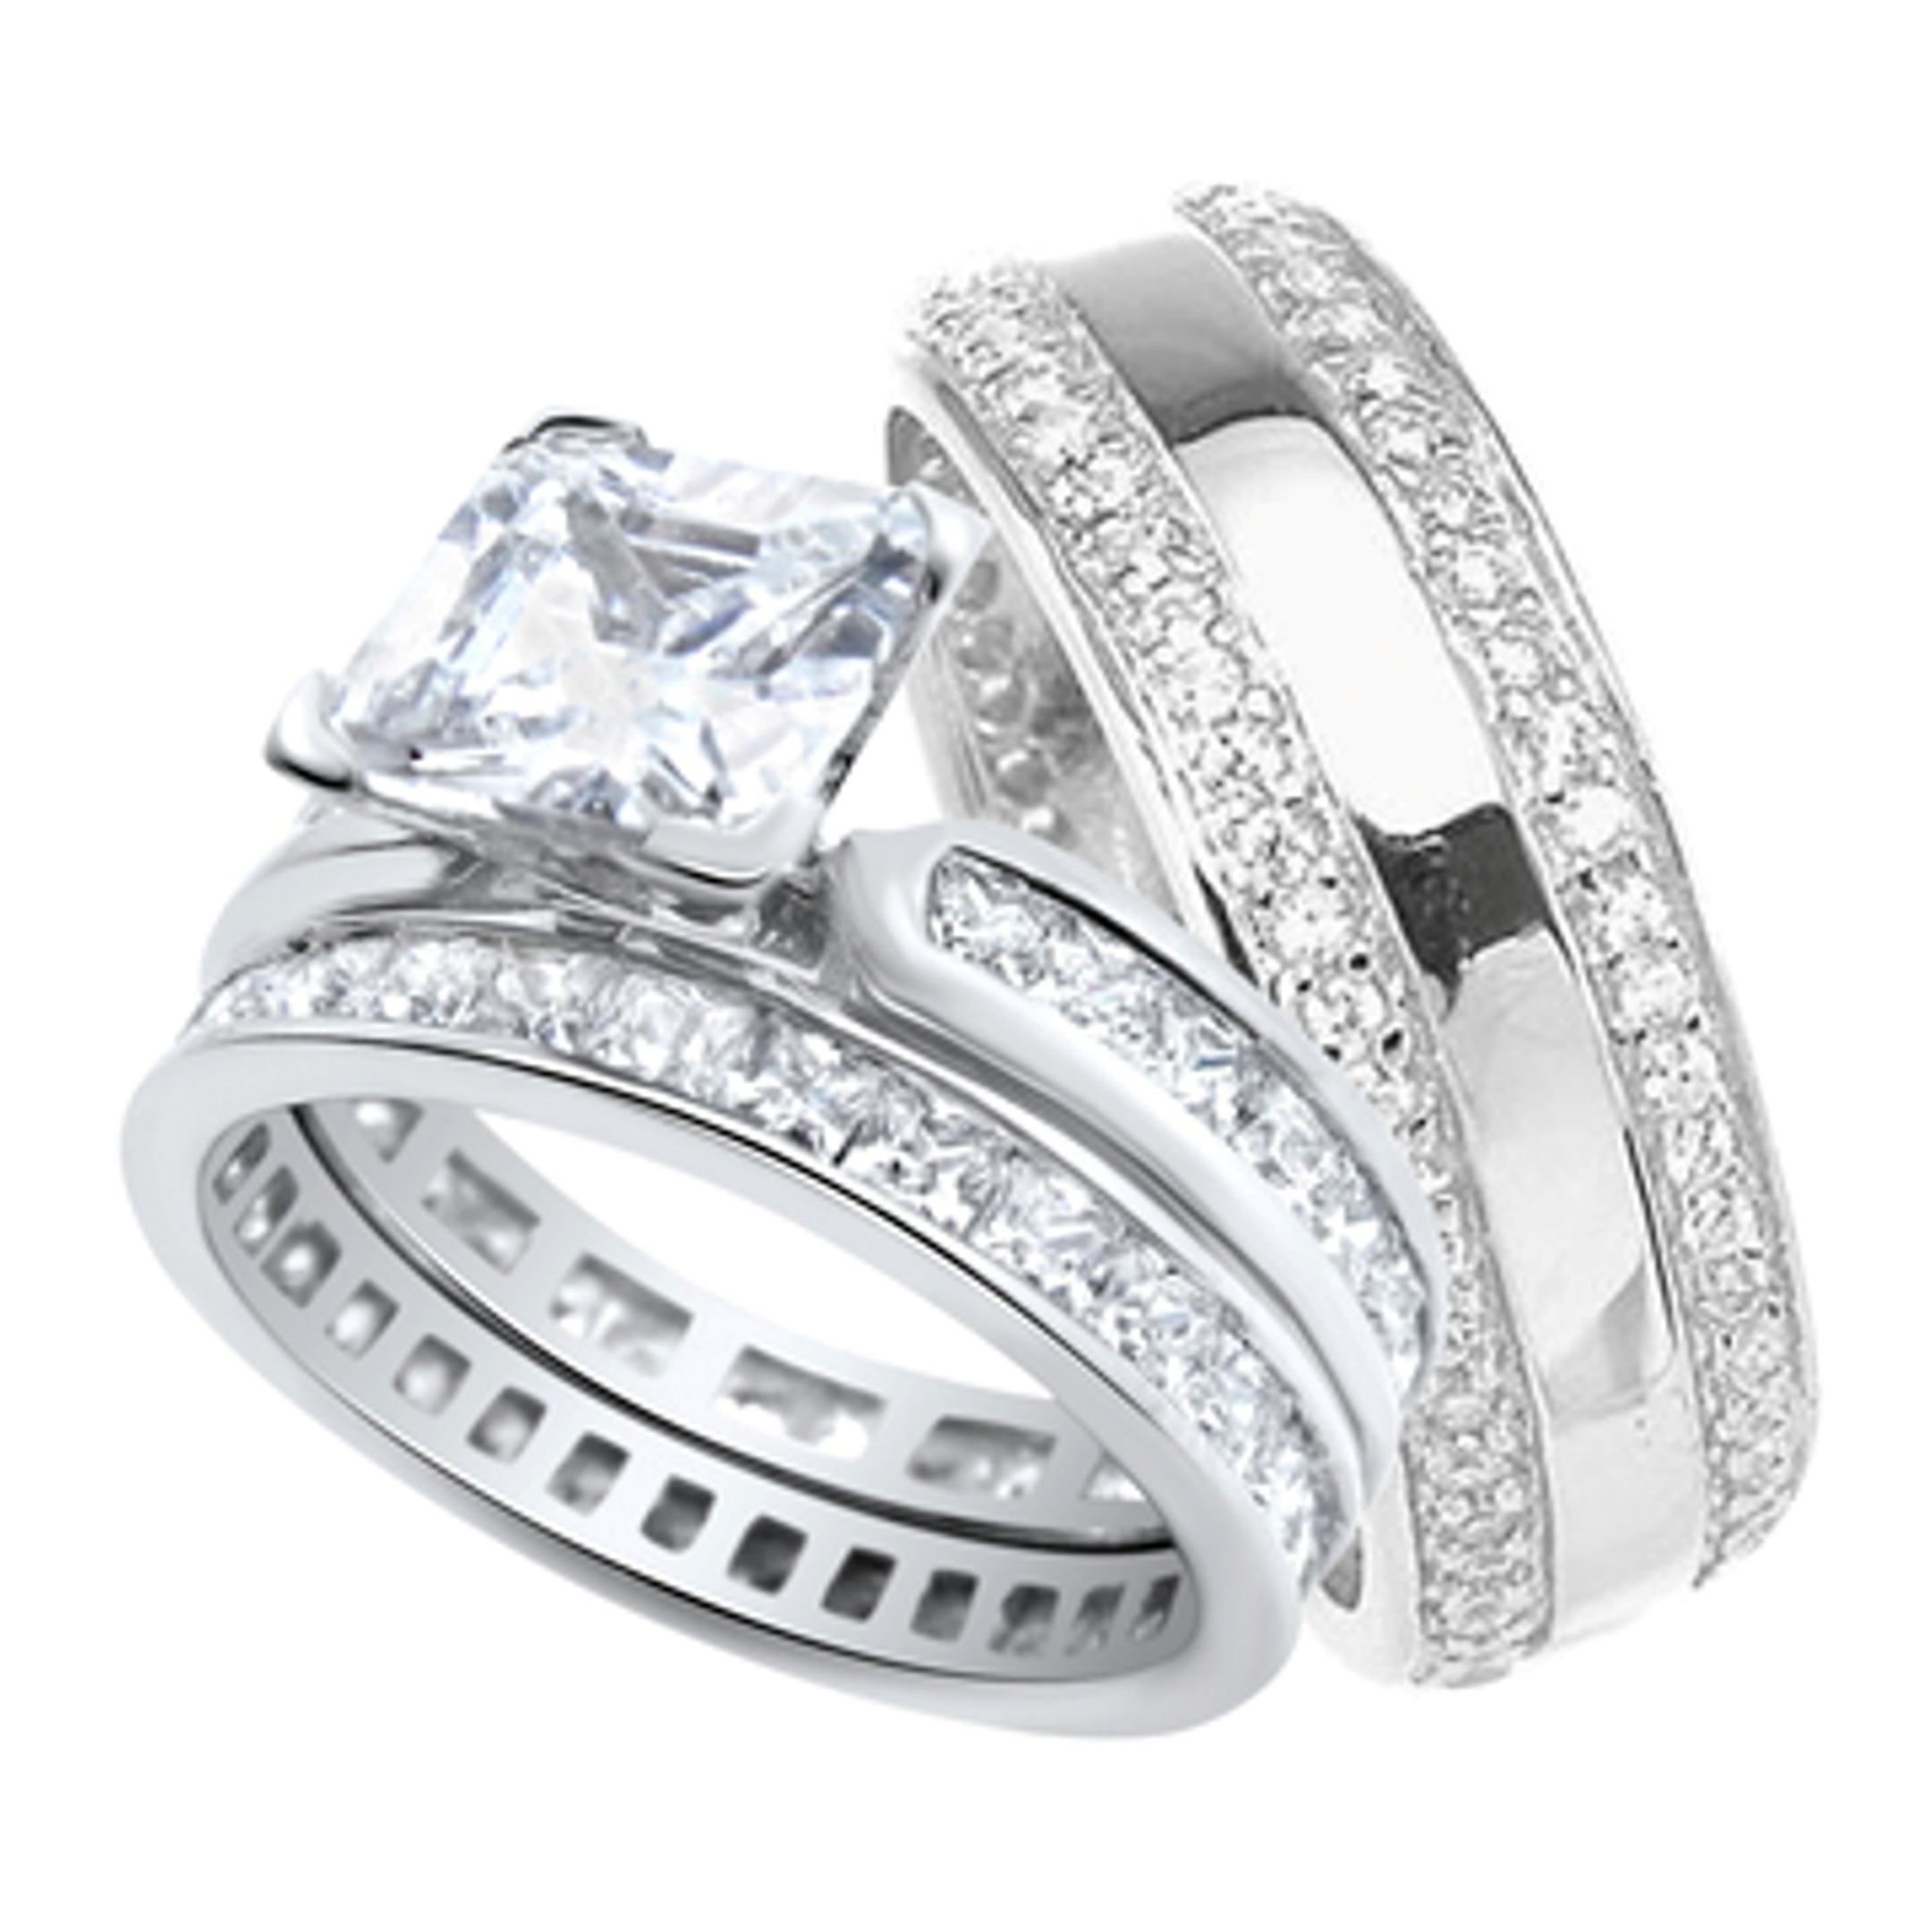 His and Hers Wedding Ring Set Matching Sterling Silver Anniversary Bands for Him and Her (8/9) (Choose Sizes)